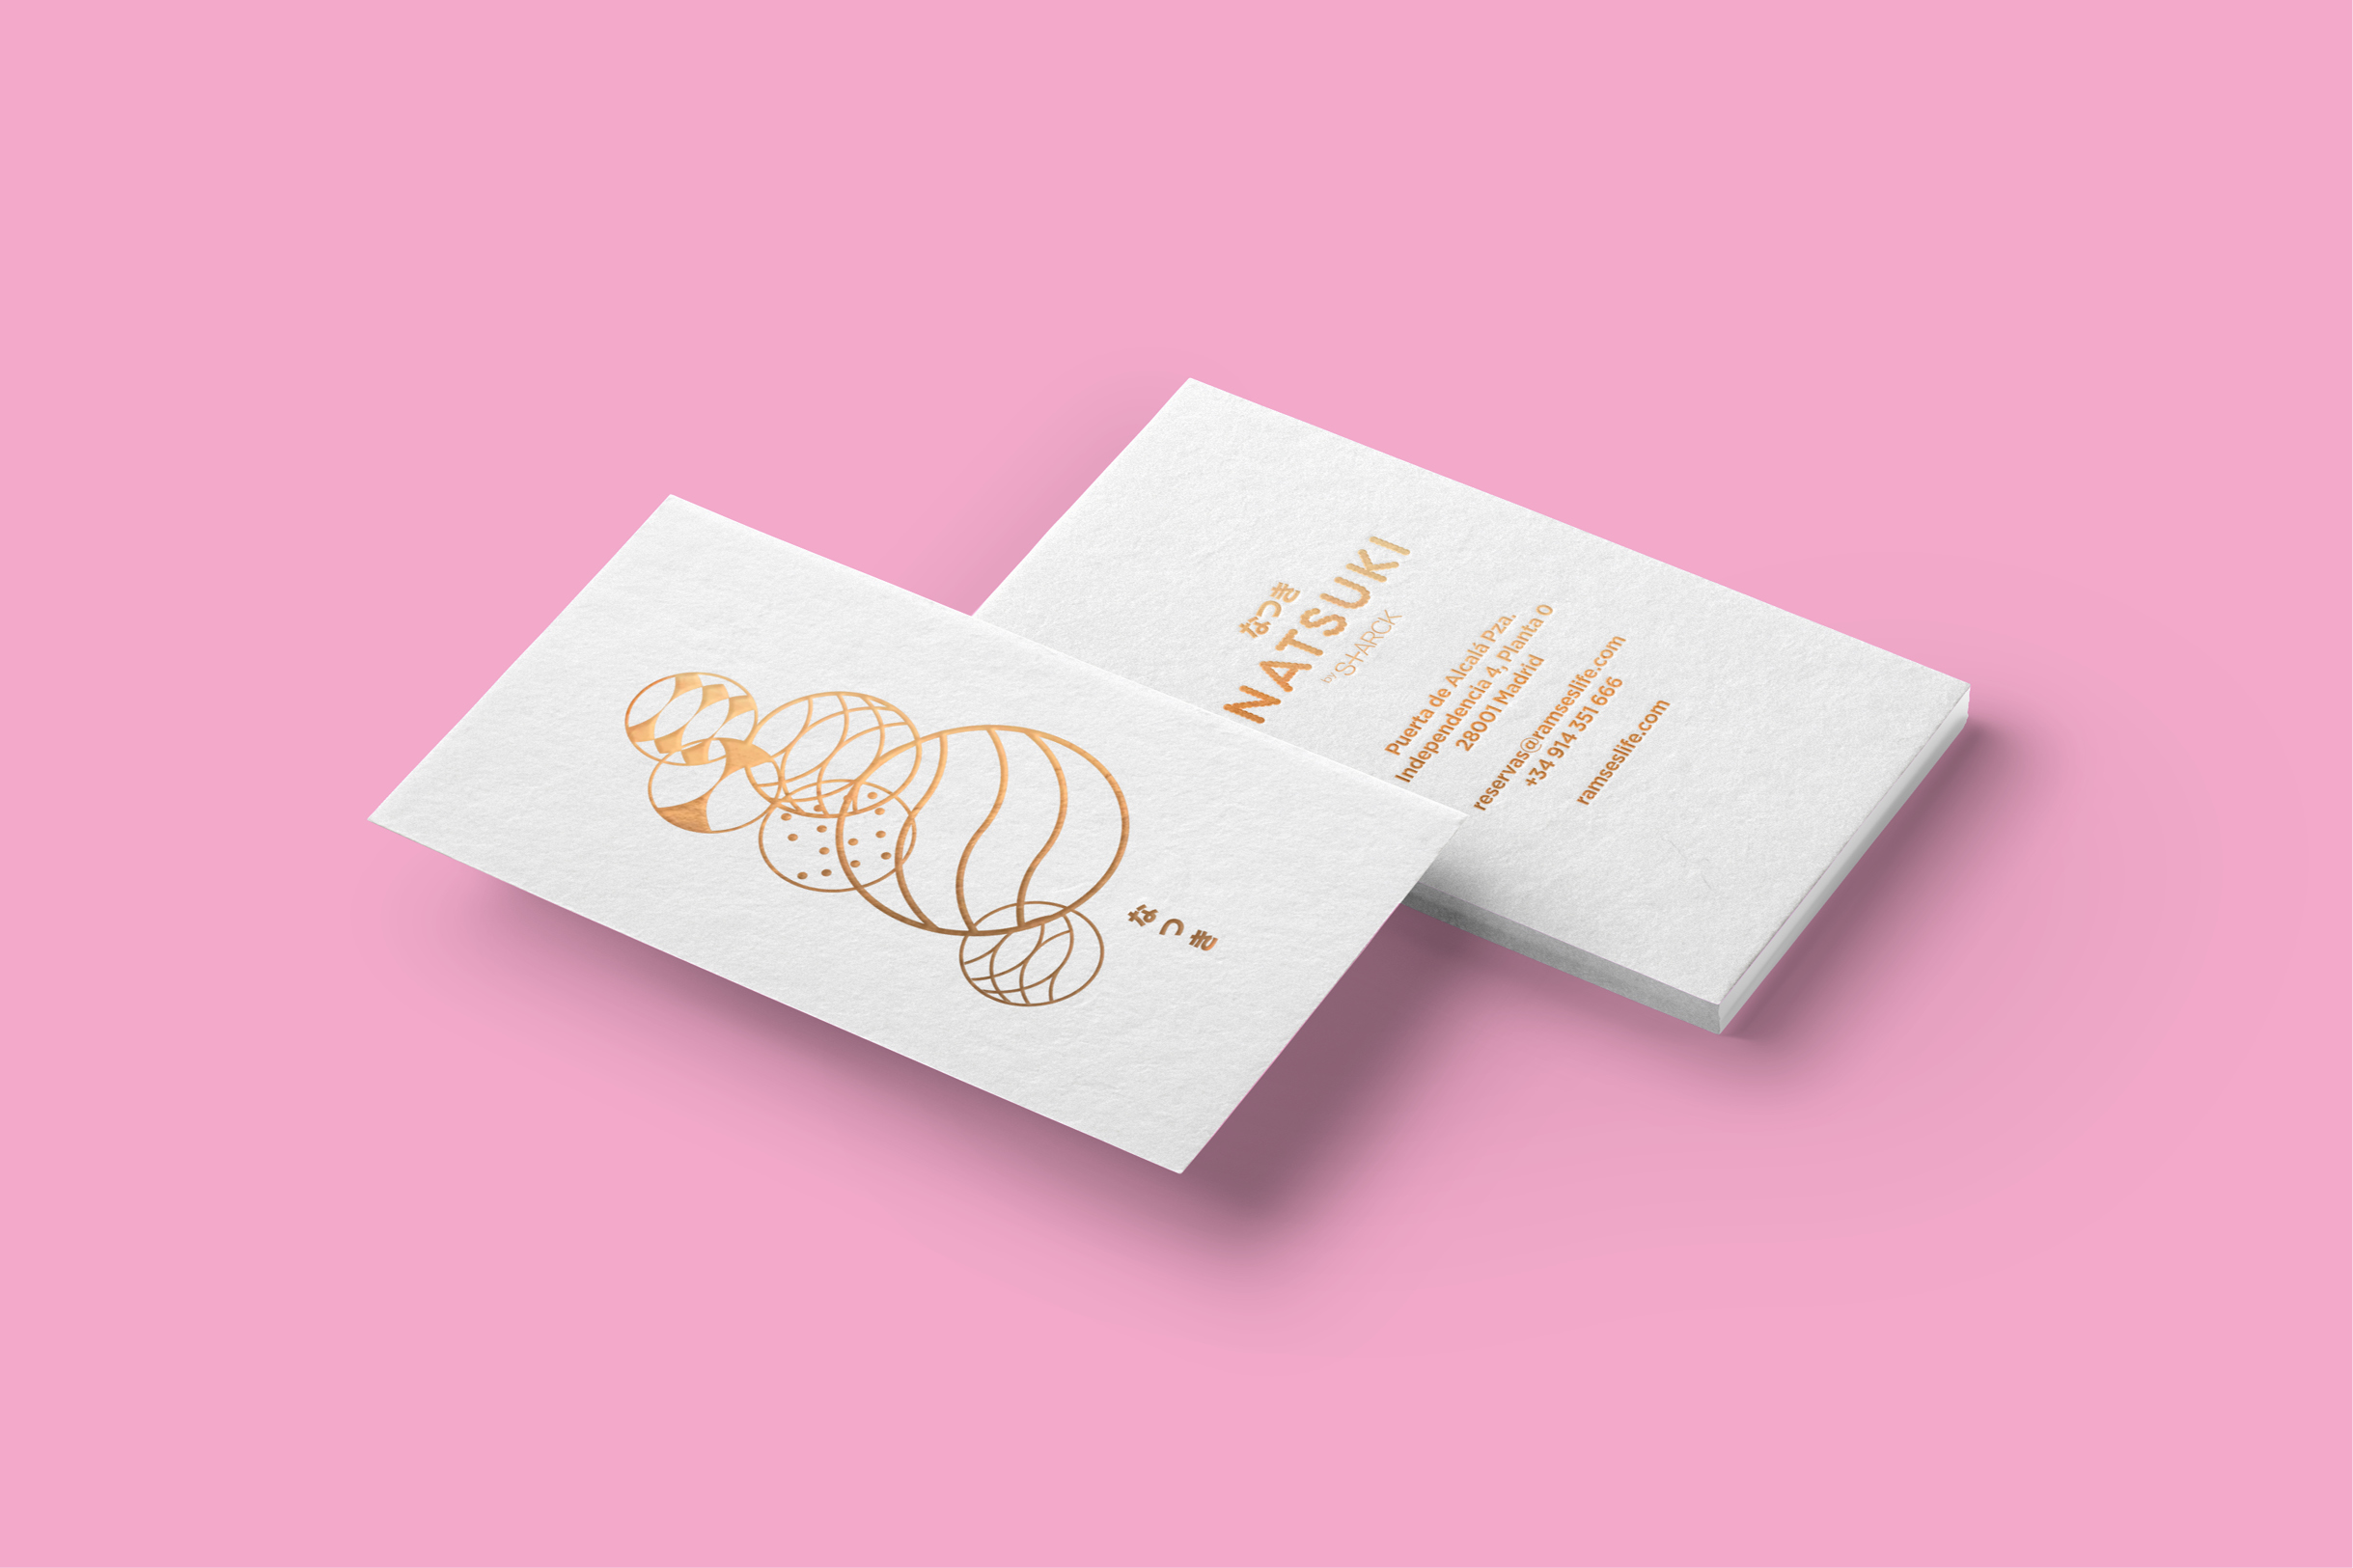 Business Cards for Natsuki / Designed in Madrid by Erretres @enviromeant.com